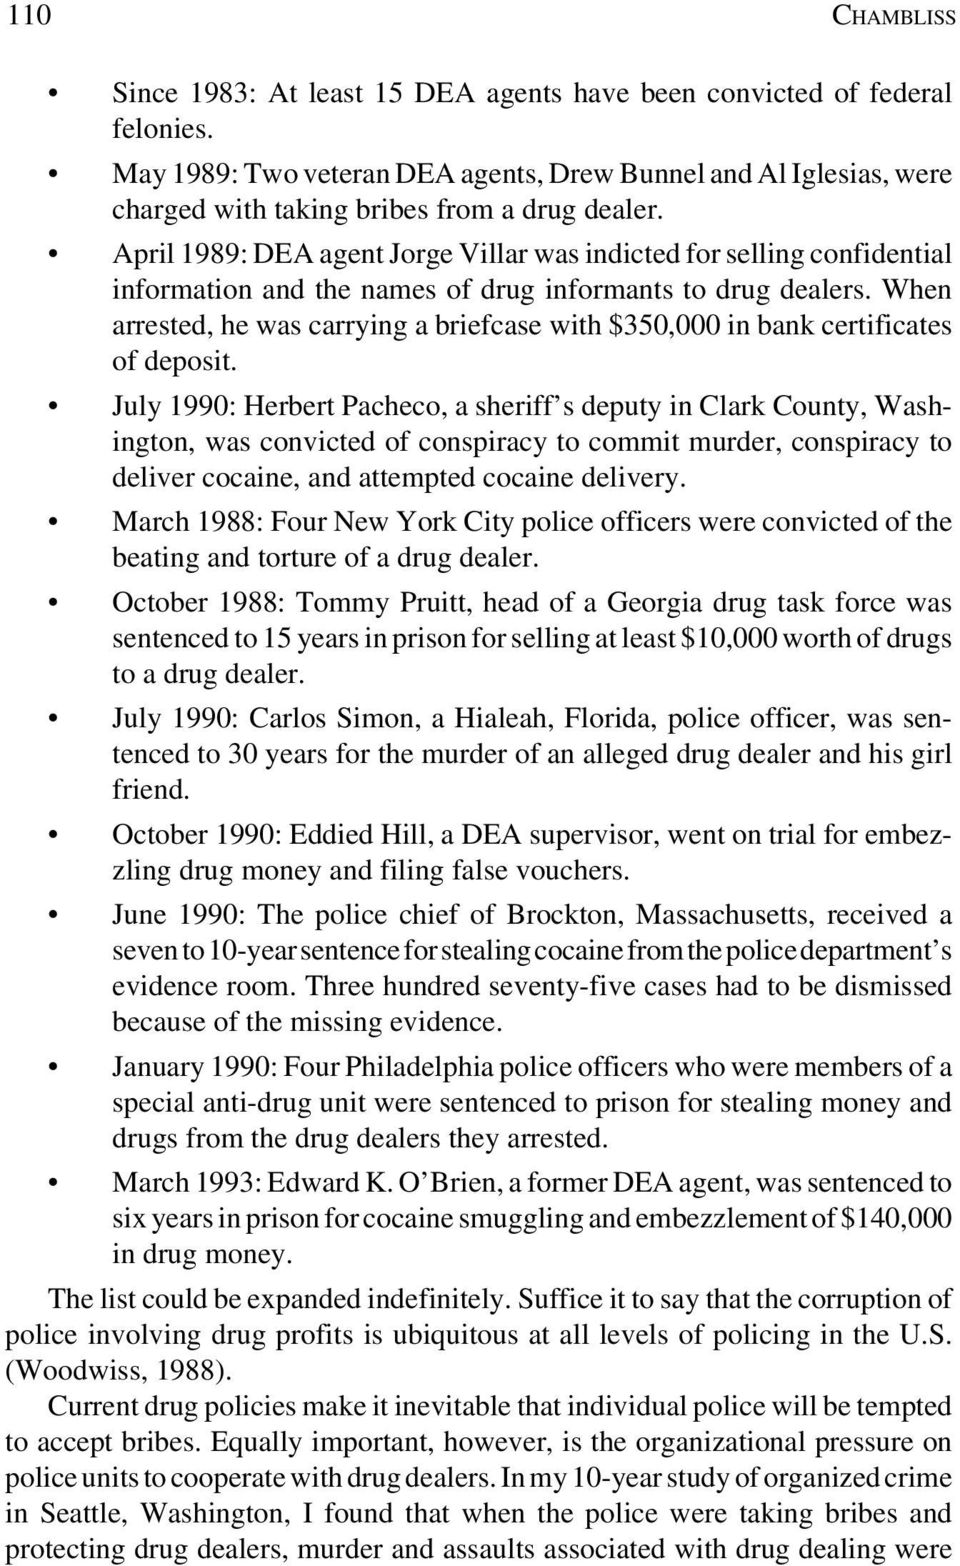 April 1989: DEA agent Jorge Villar was indicted for selling confidential information and the names of drug informants to drug dealers.